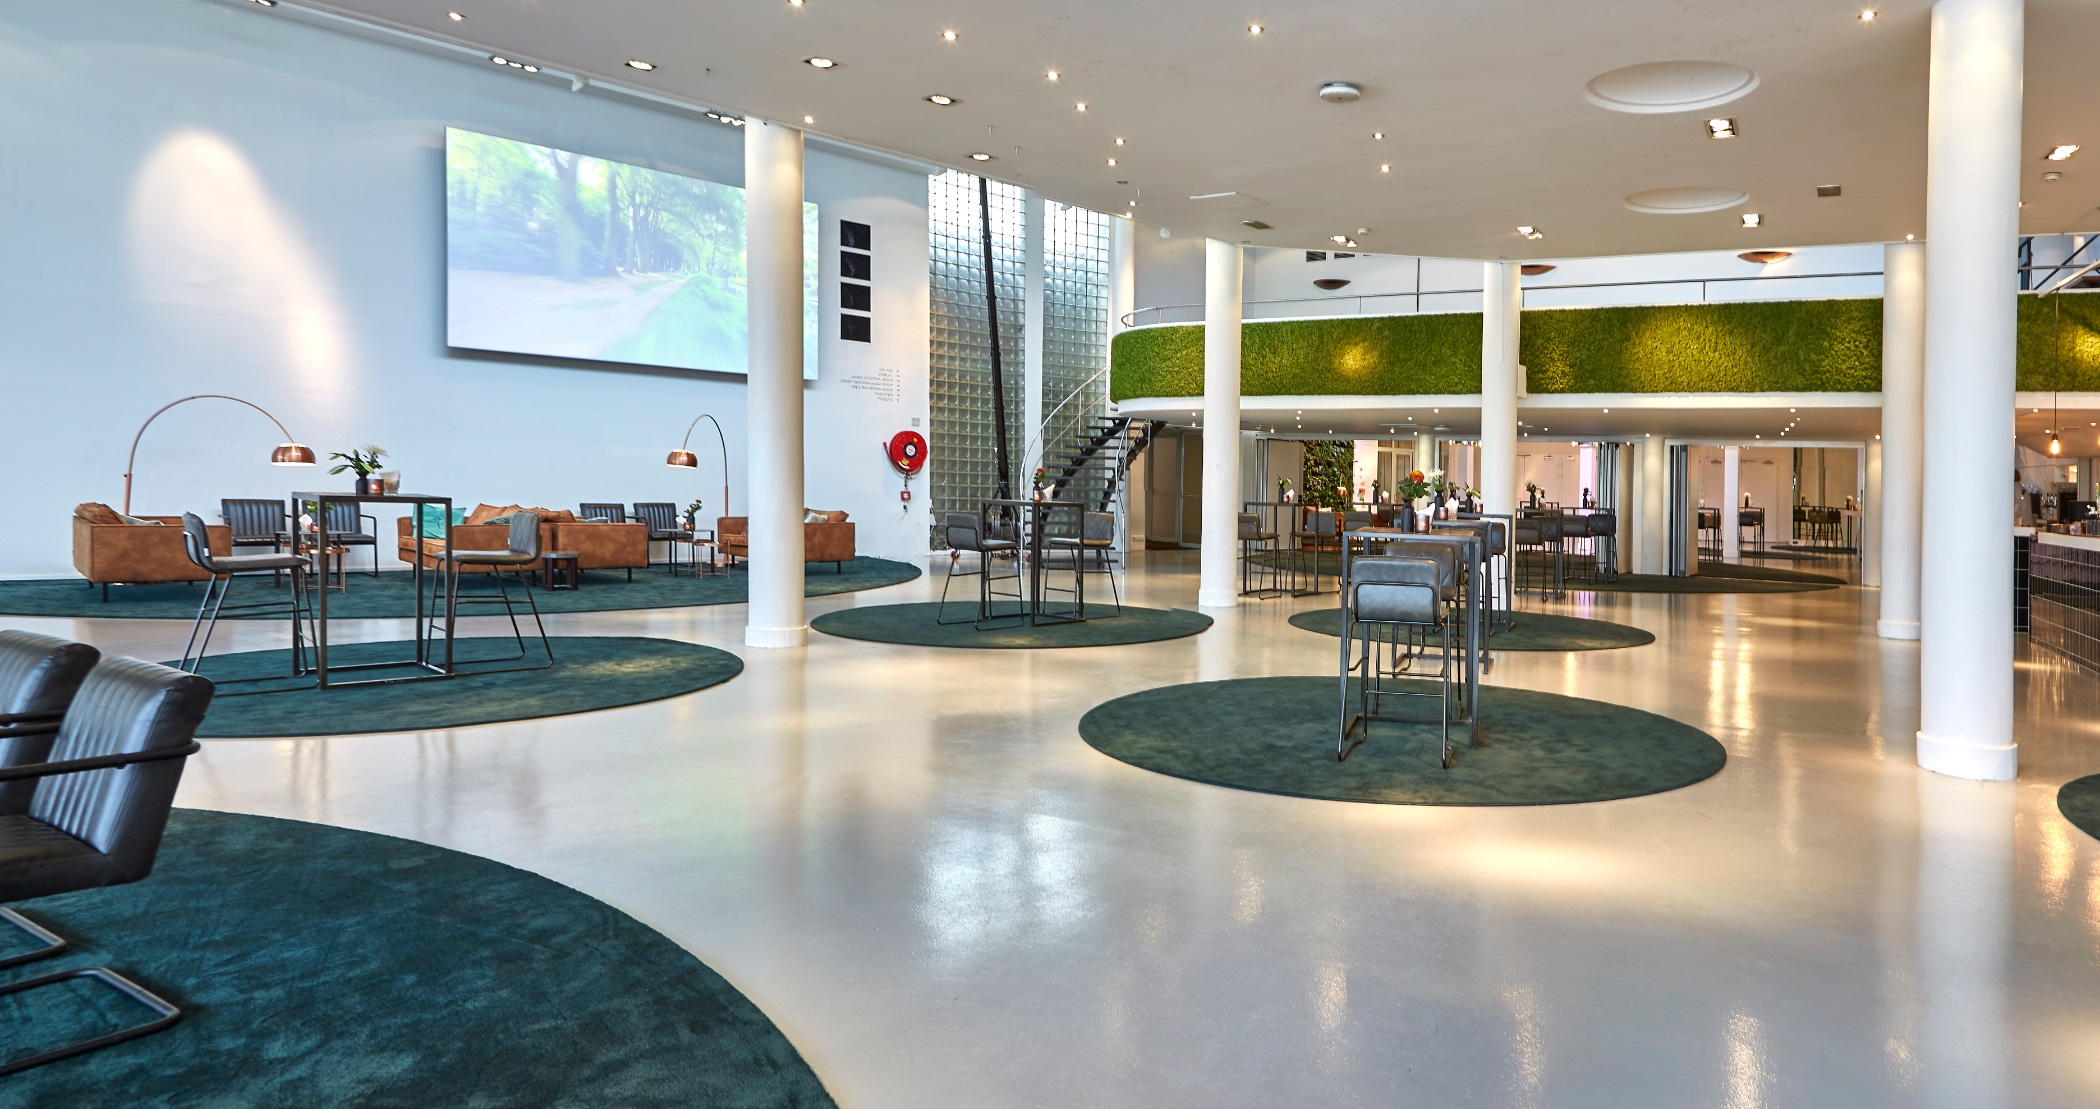 Green Lounge evenementenlocatie Gooiland